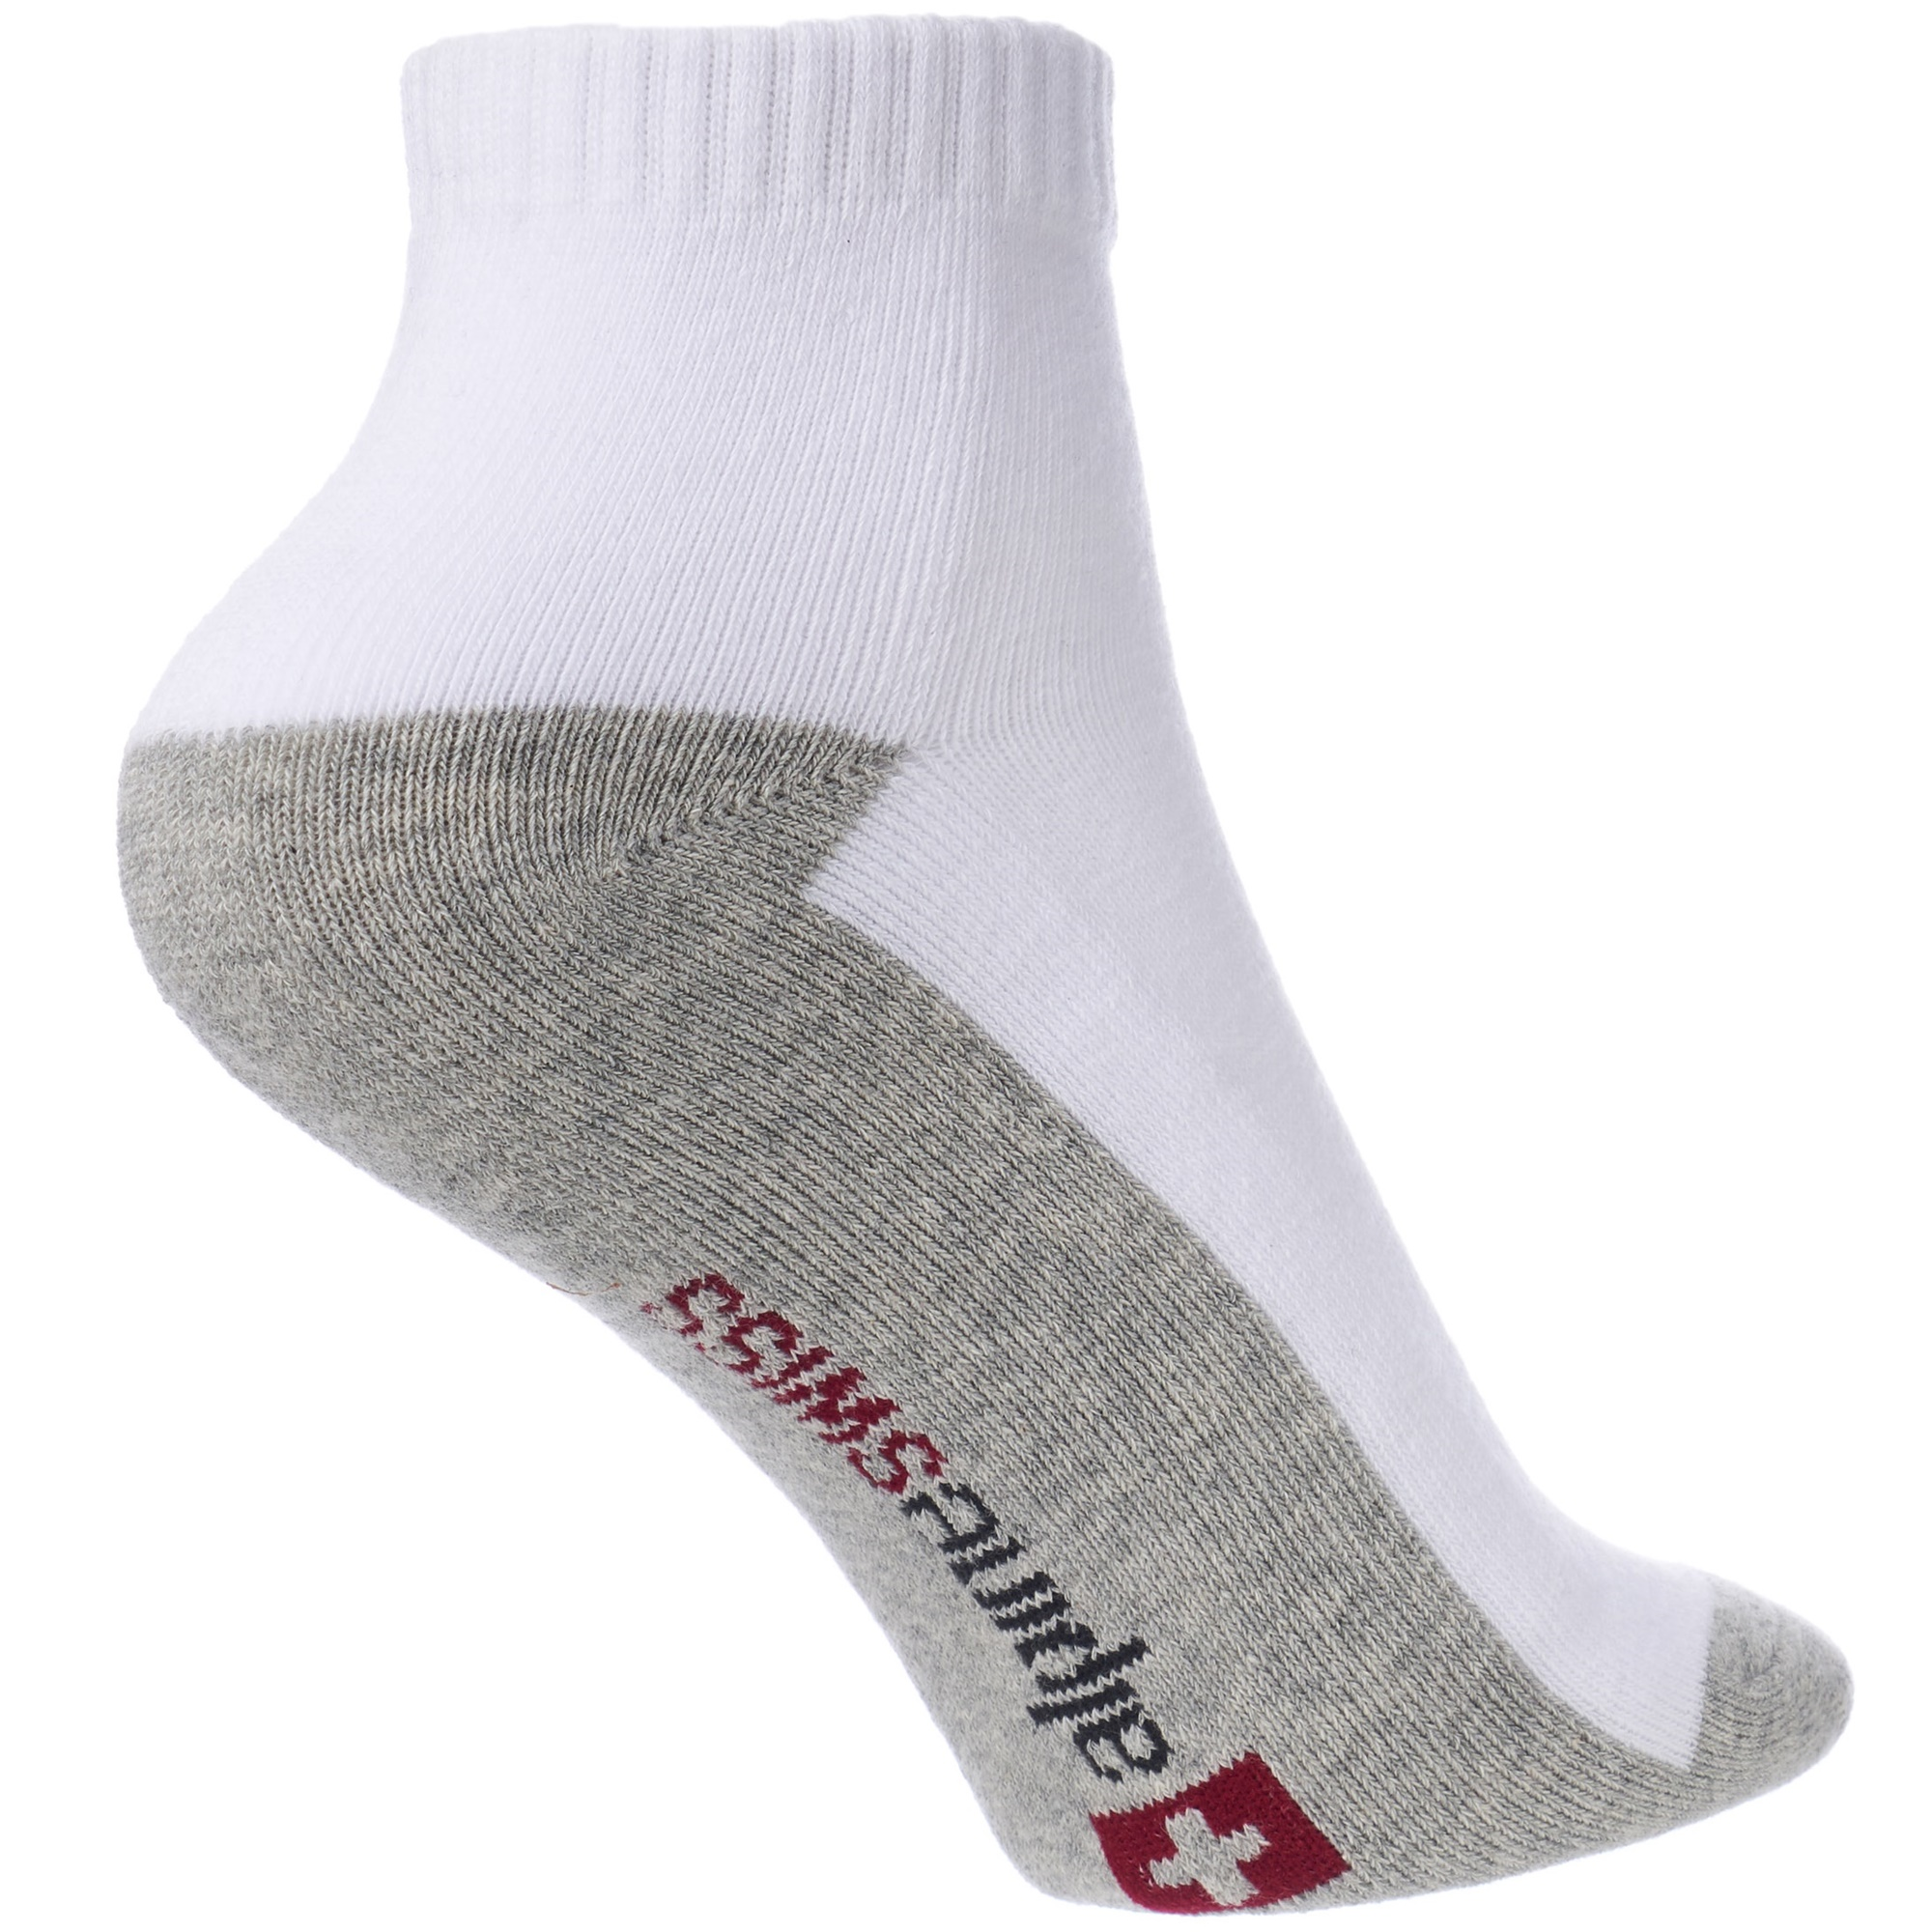 Alpine-Swiss-Mens-8-Pack-Ankle-Socks-Low-Cut-Cotton-Athletic-Sock-Shoe-Size-6-12 thumbnail 23